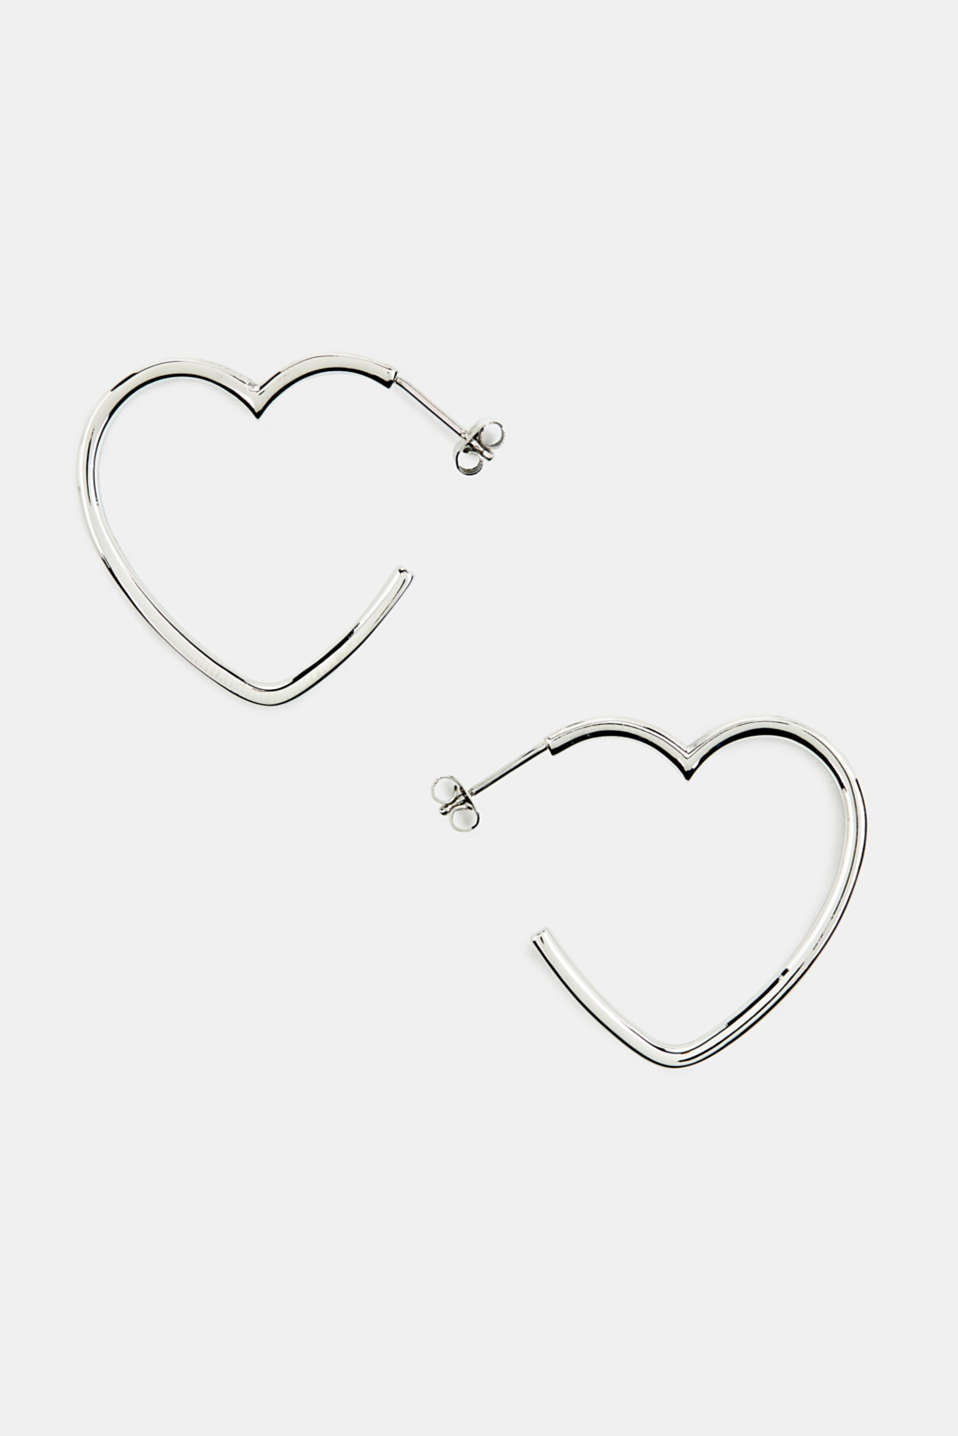 Heart-shaped hoop earrings in stainless steel, LCSILVER, detail image number 0